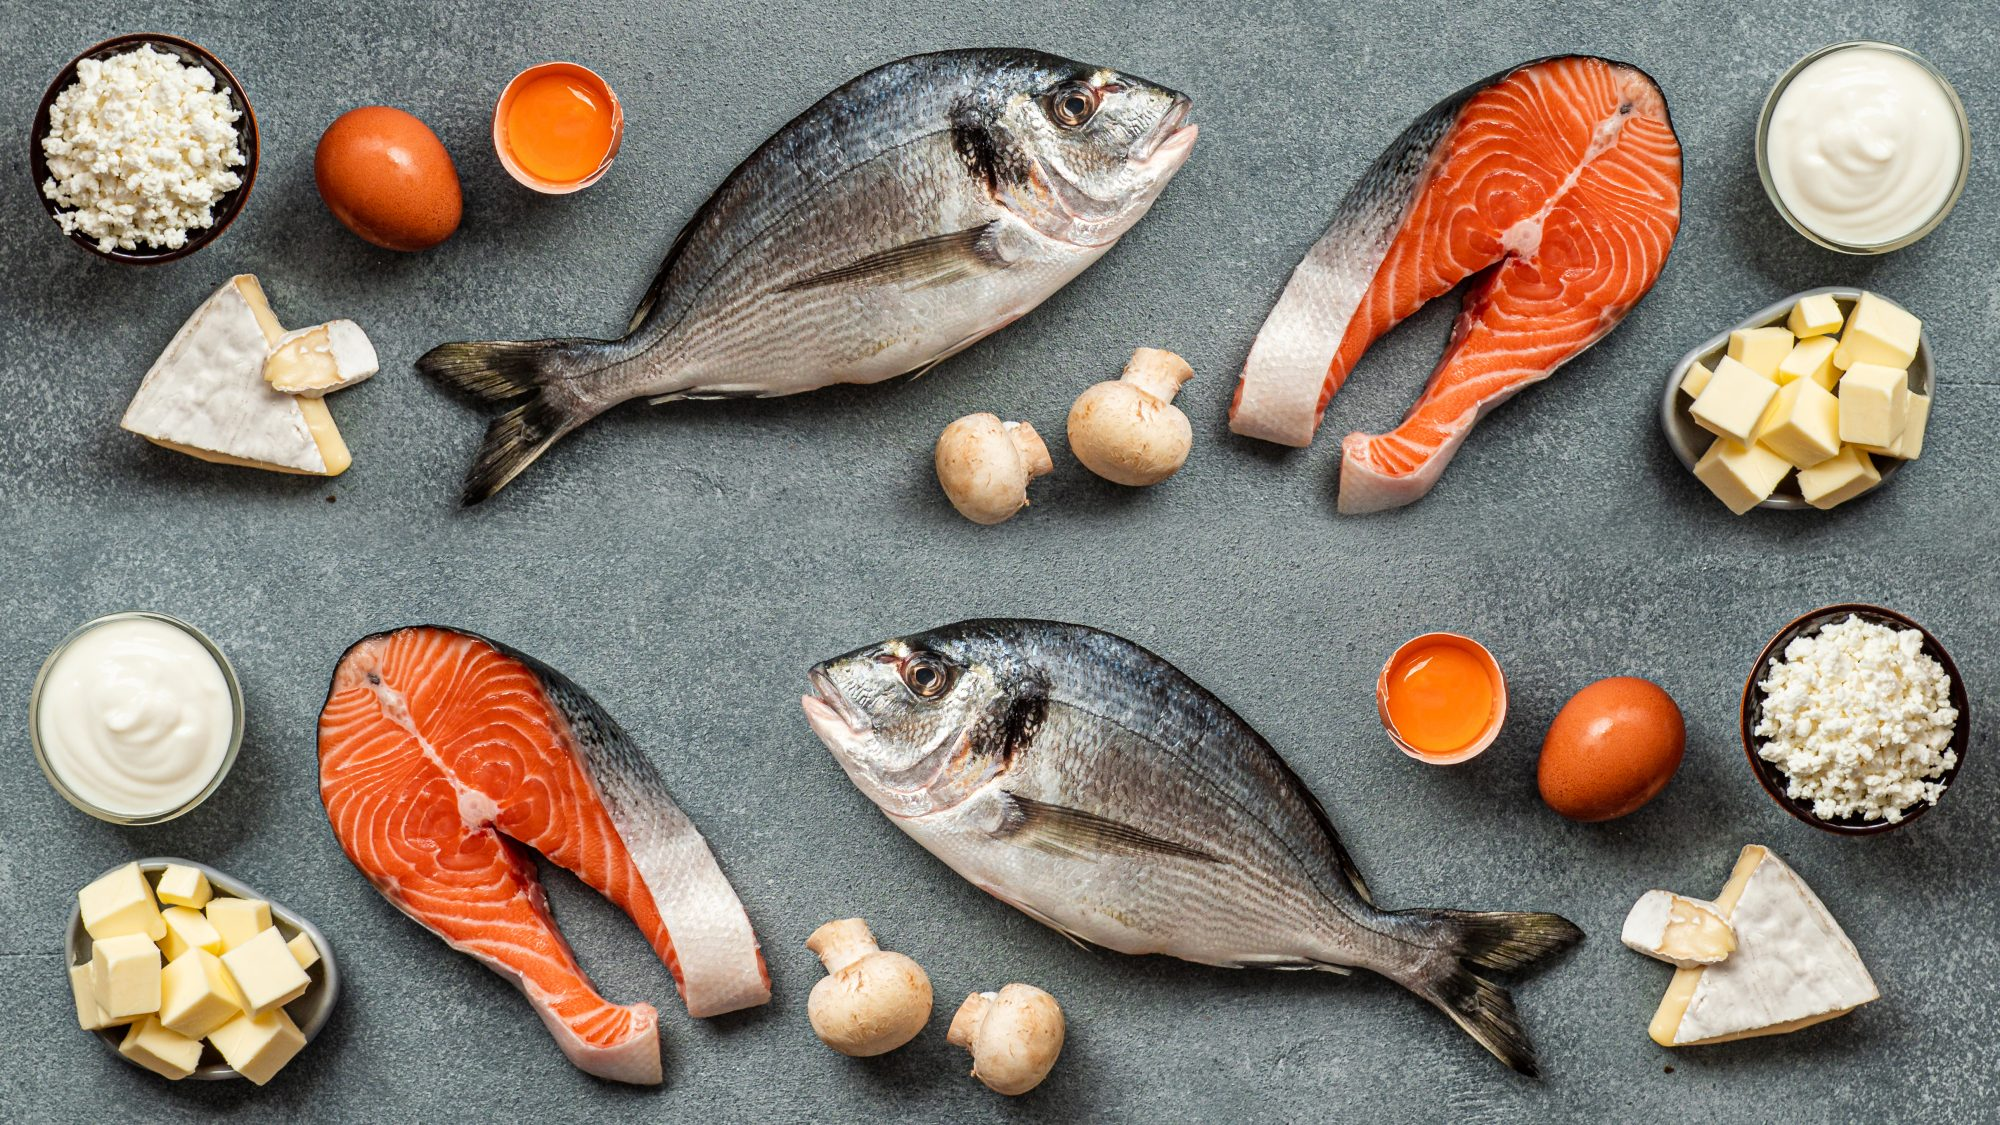 Vitamin-D-Foods: salmon and fatty fish